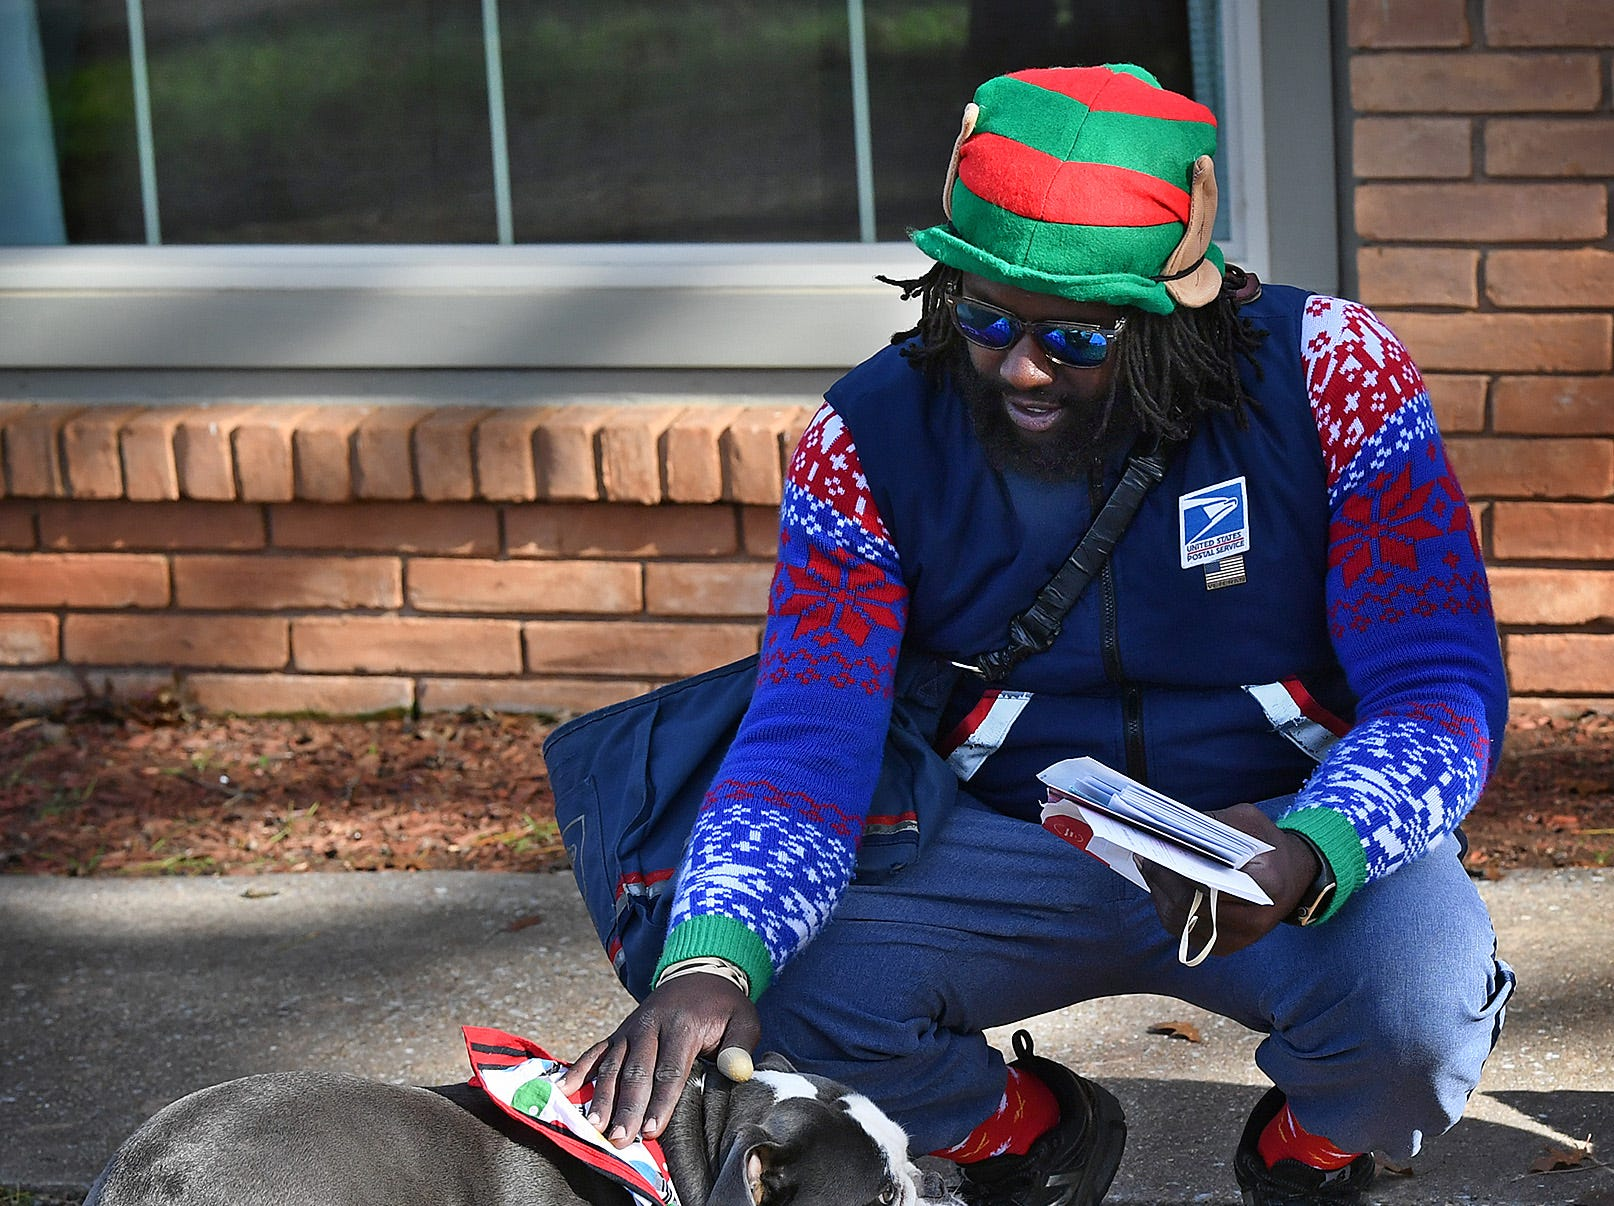 Joe Forbins, a mail carrier, stops to pet a dog on his route in the southwest part of town. In December, Forbins dons festive socks, hats and more to spread cheer during the workday.